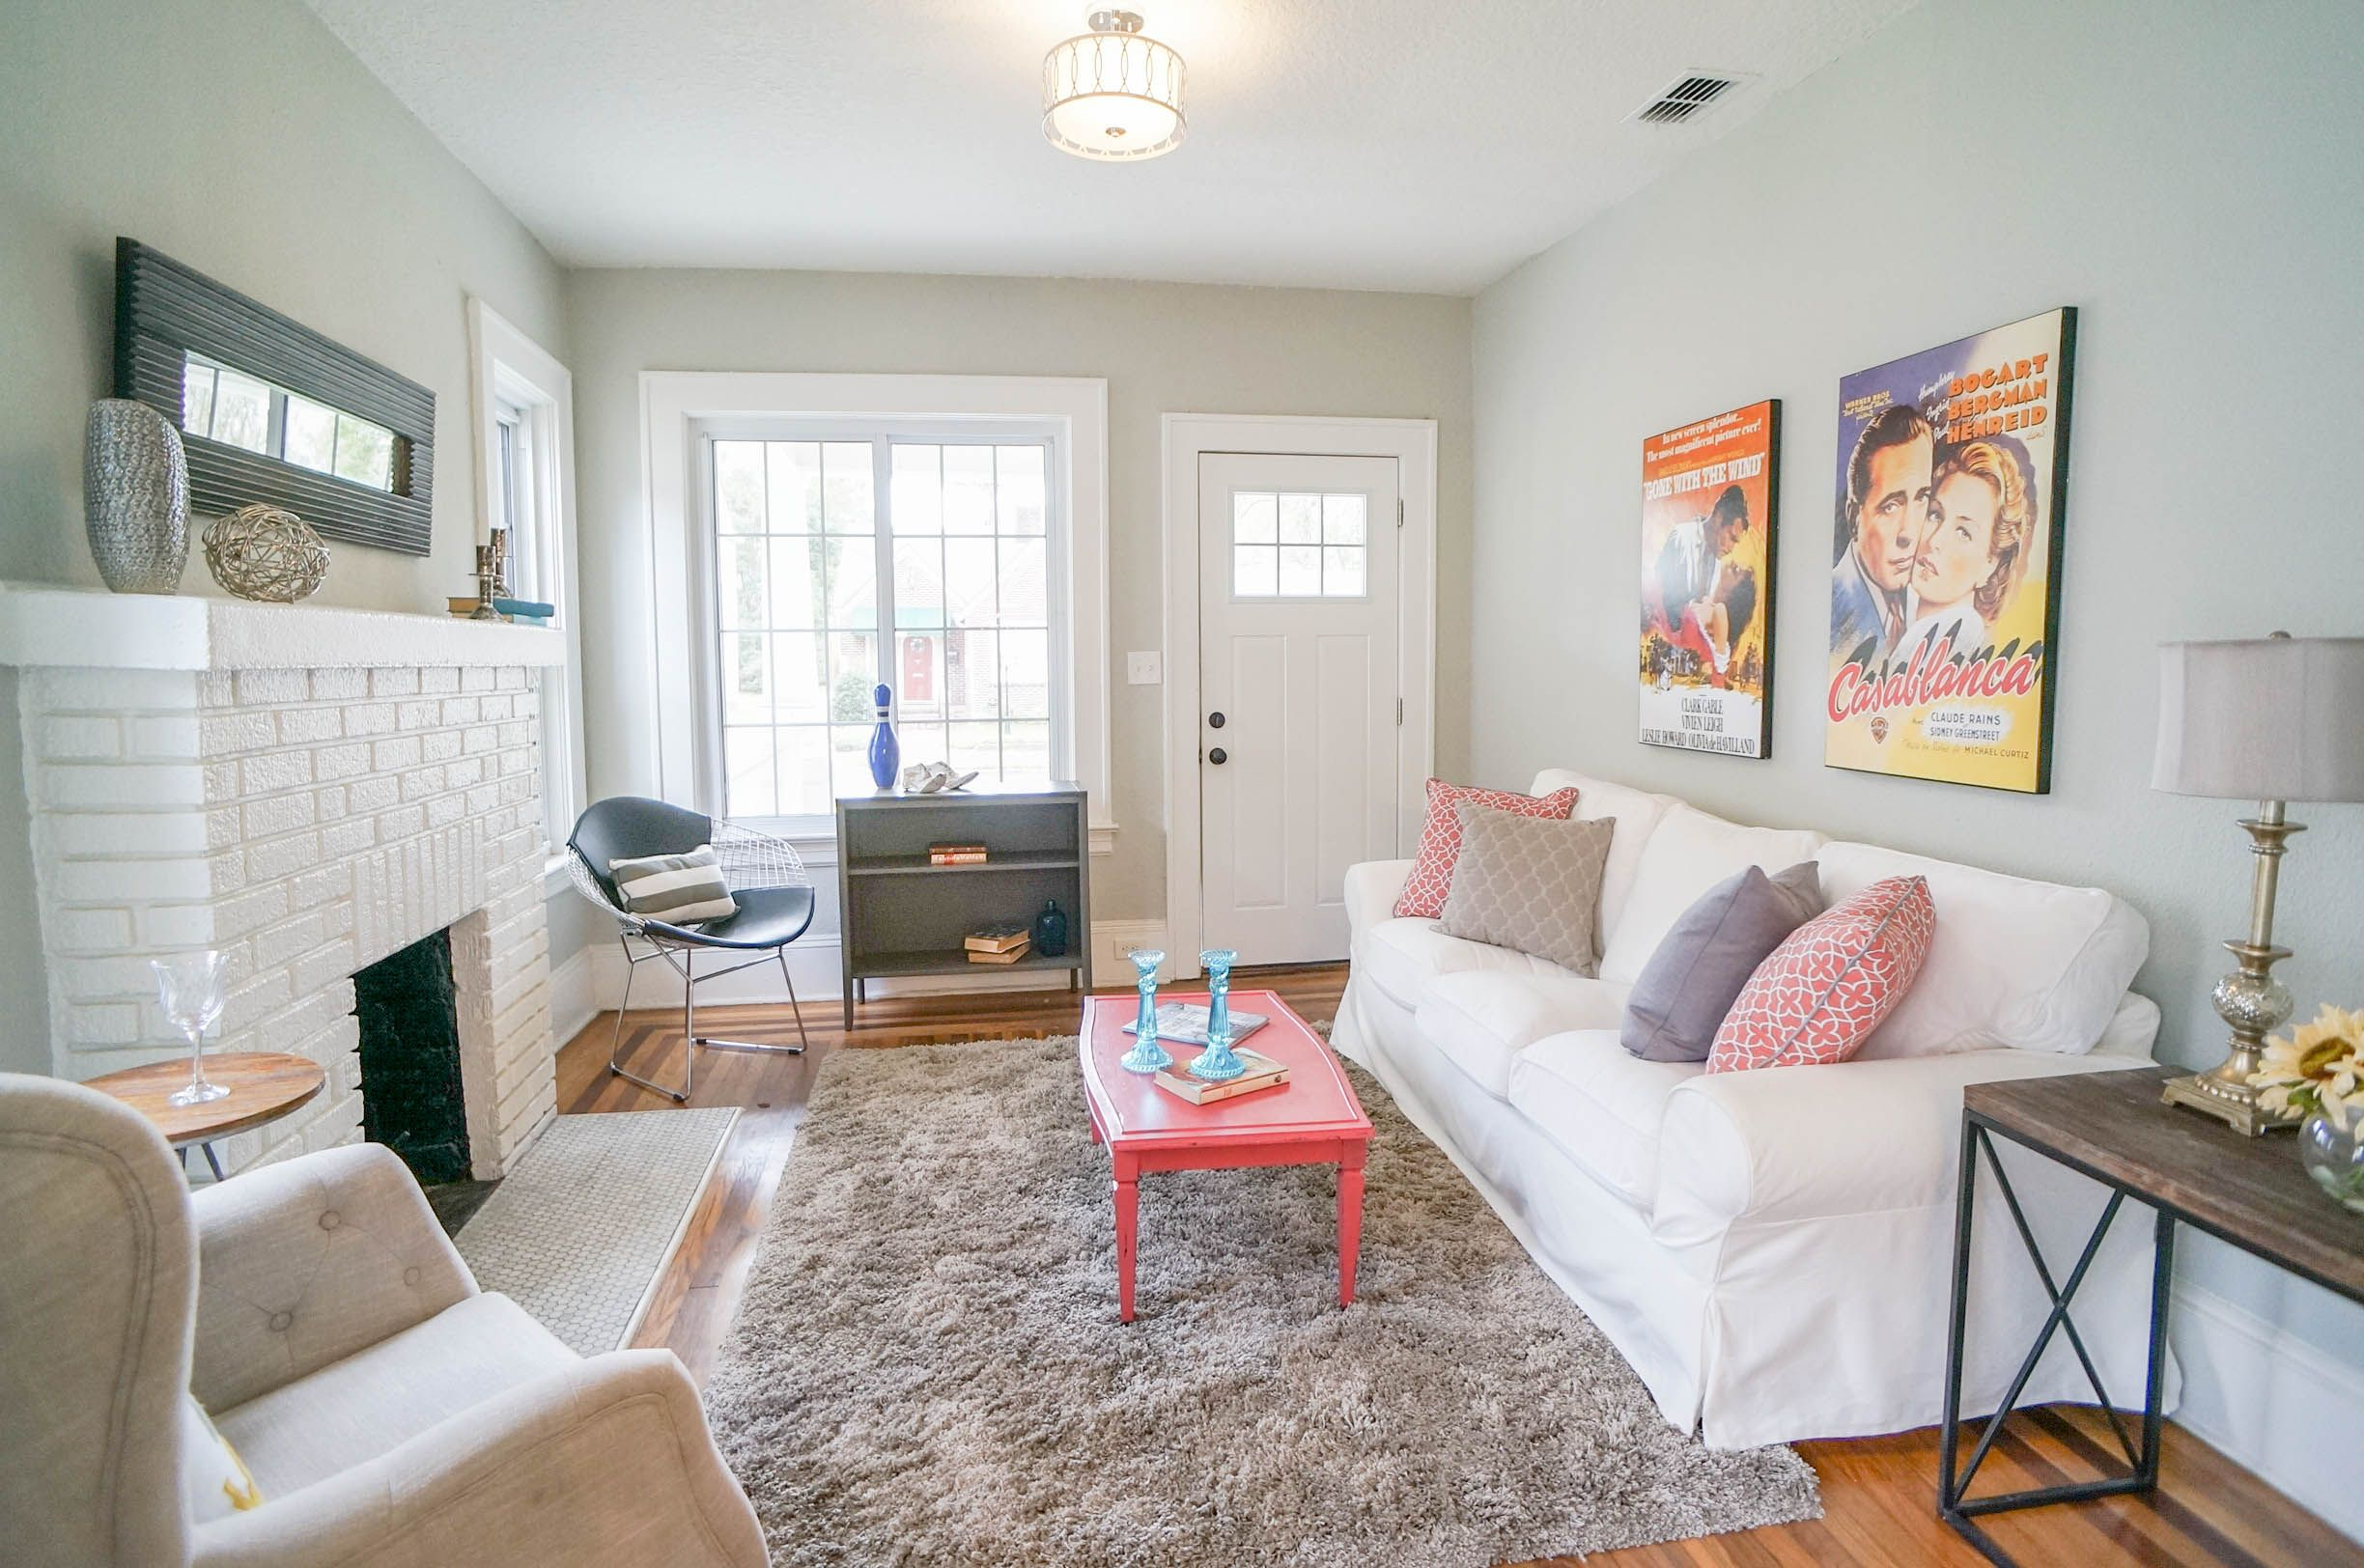 Light Grey Walls, Wood Floors, And Painted White Brick Fireplace